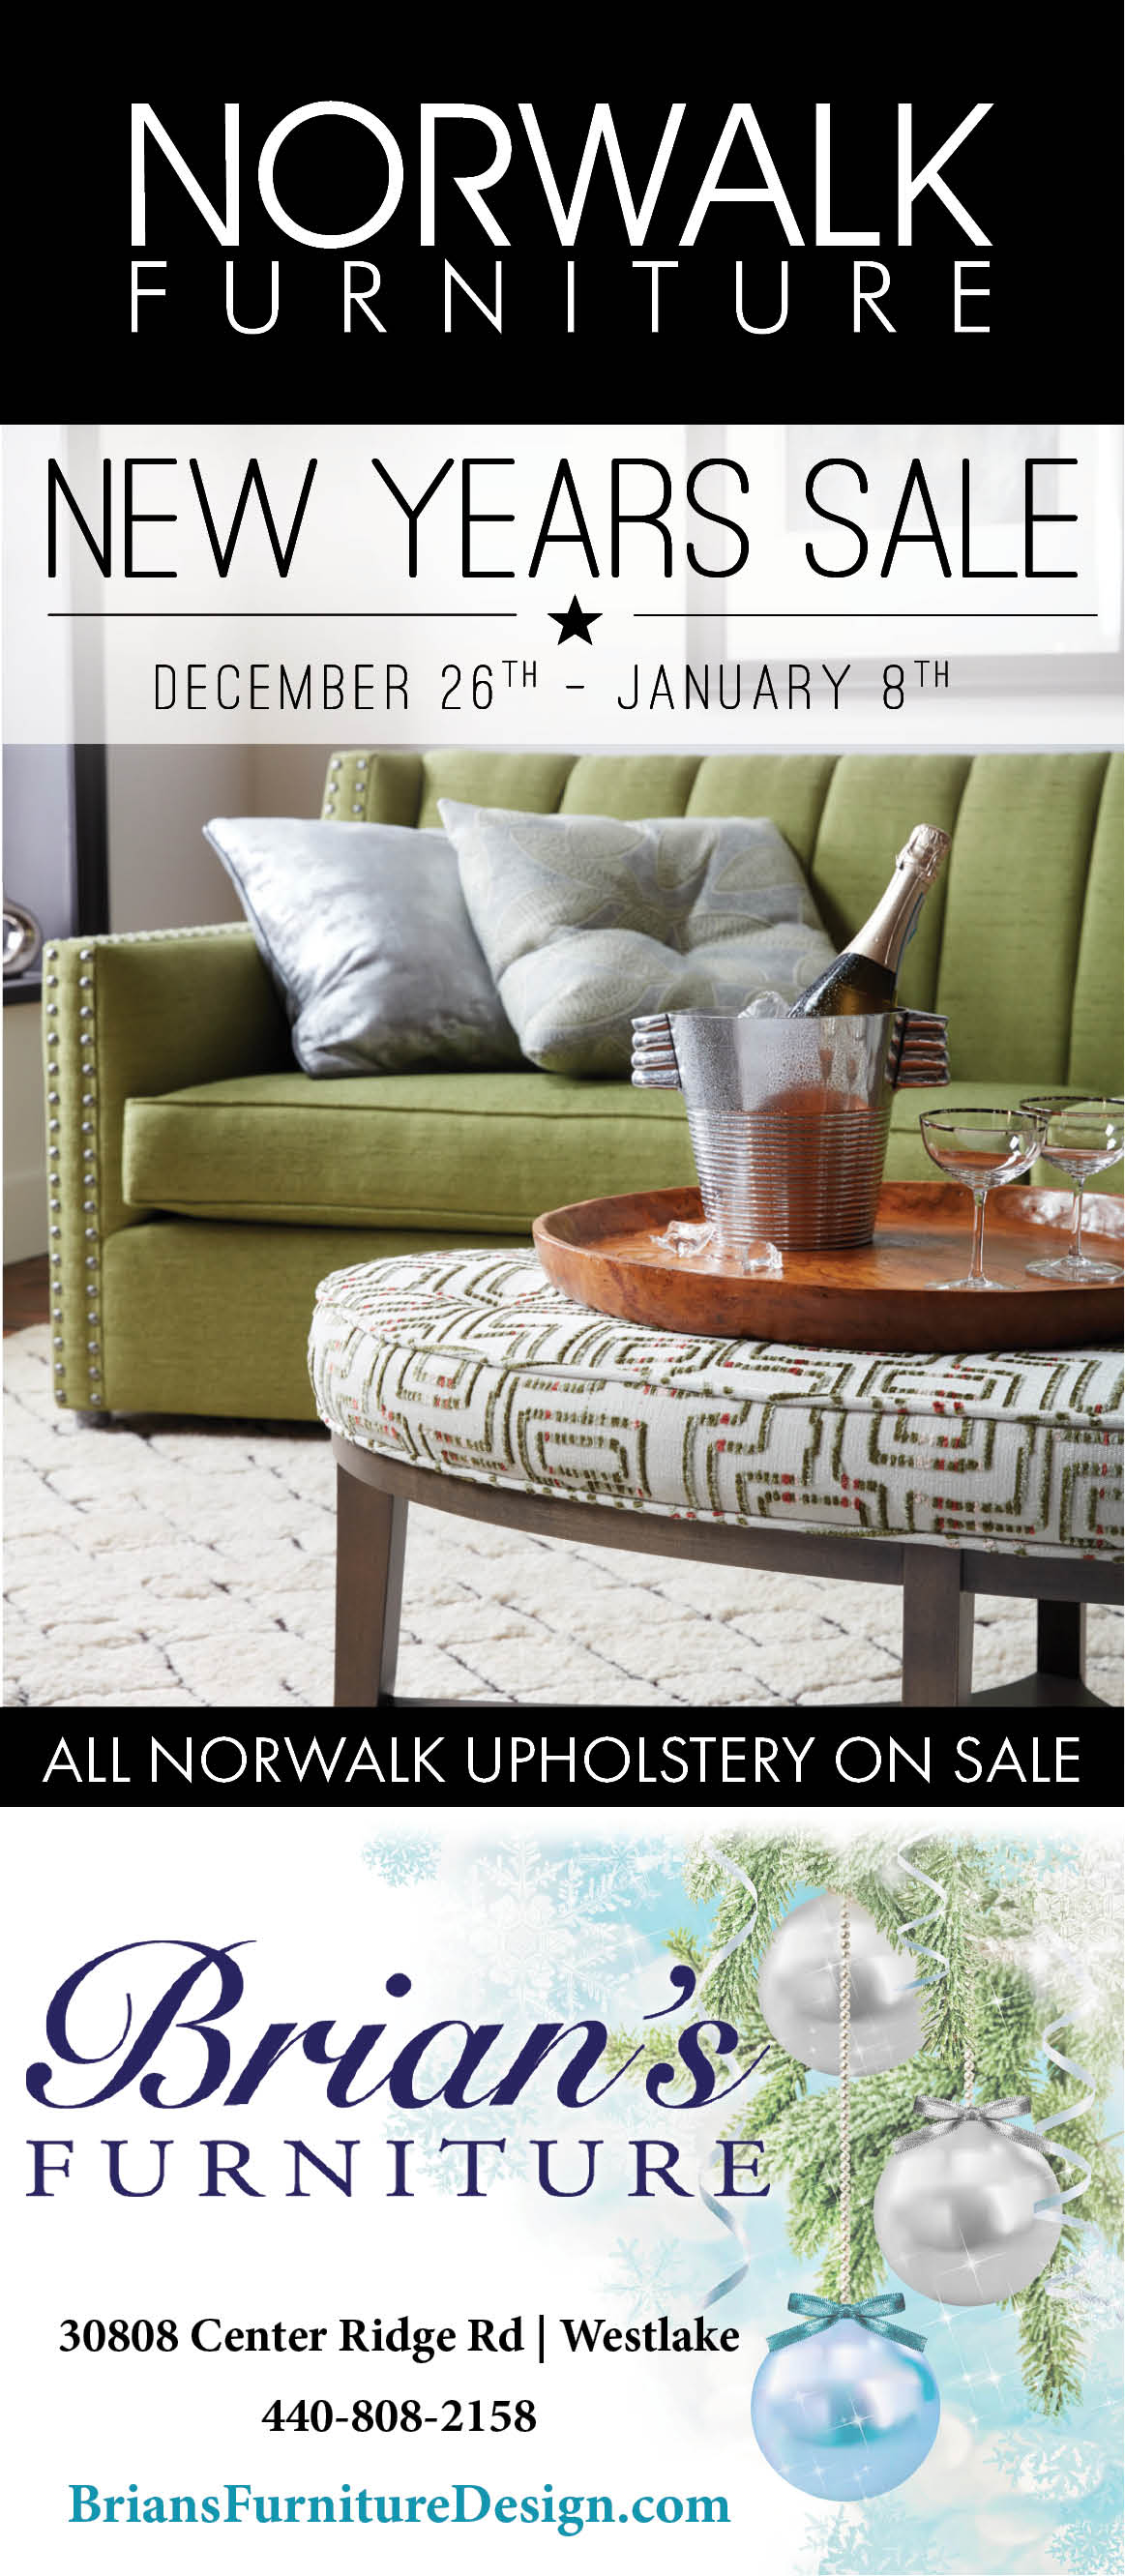 Brians furniture norwalk furniture new years sale